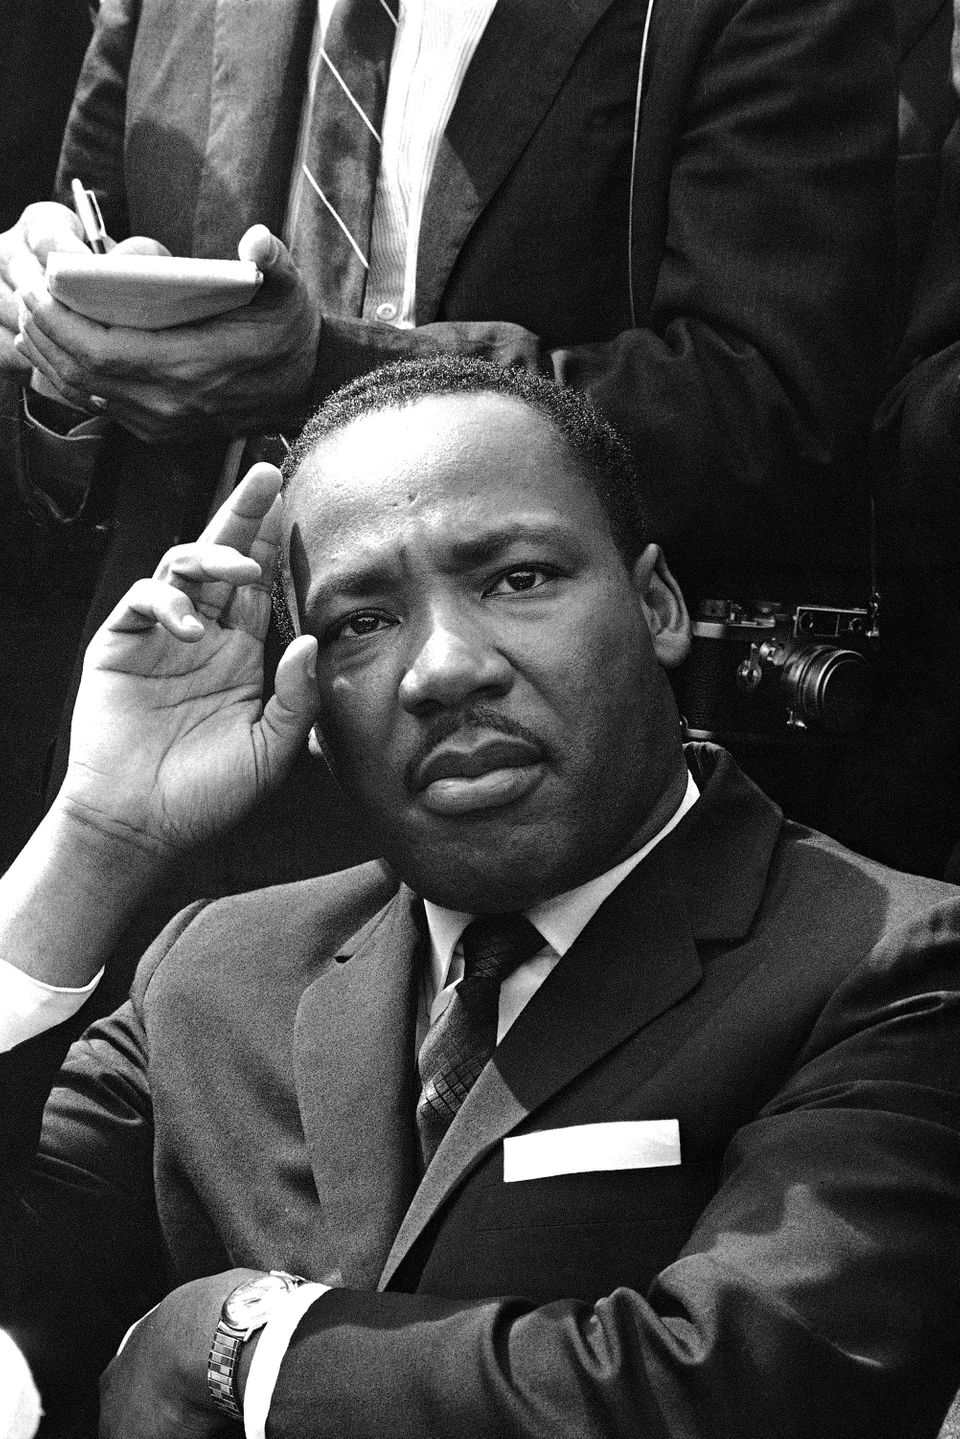 Martin Luther King Jr. was christened Michael King Jr. When his father became pastor of Ebenezer Baptist Church in 1931, he a